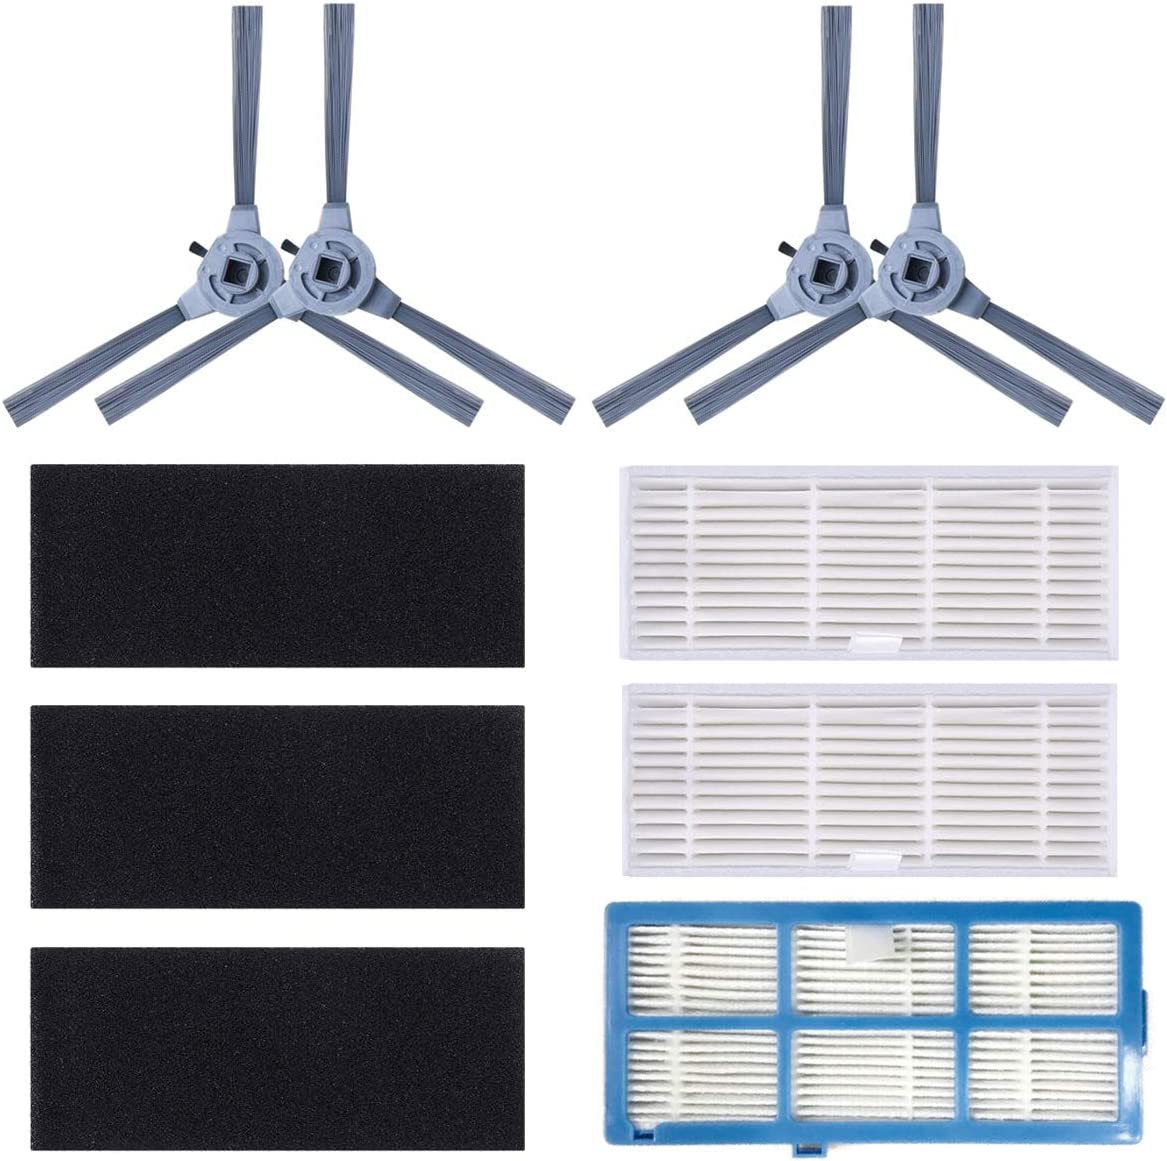 Coredy Replacement Kit (Side Brush, High Efficiency Filter) for R550,R650,R750 (R700) Robot Vacuum Cleaner Accessories